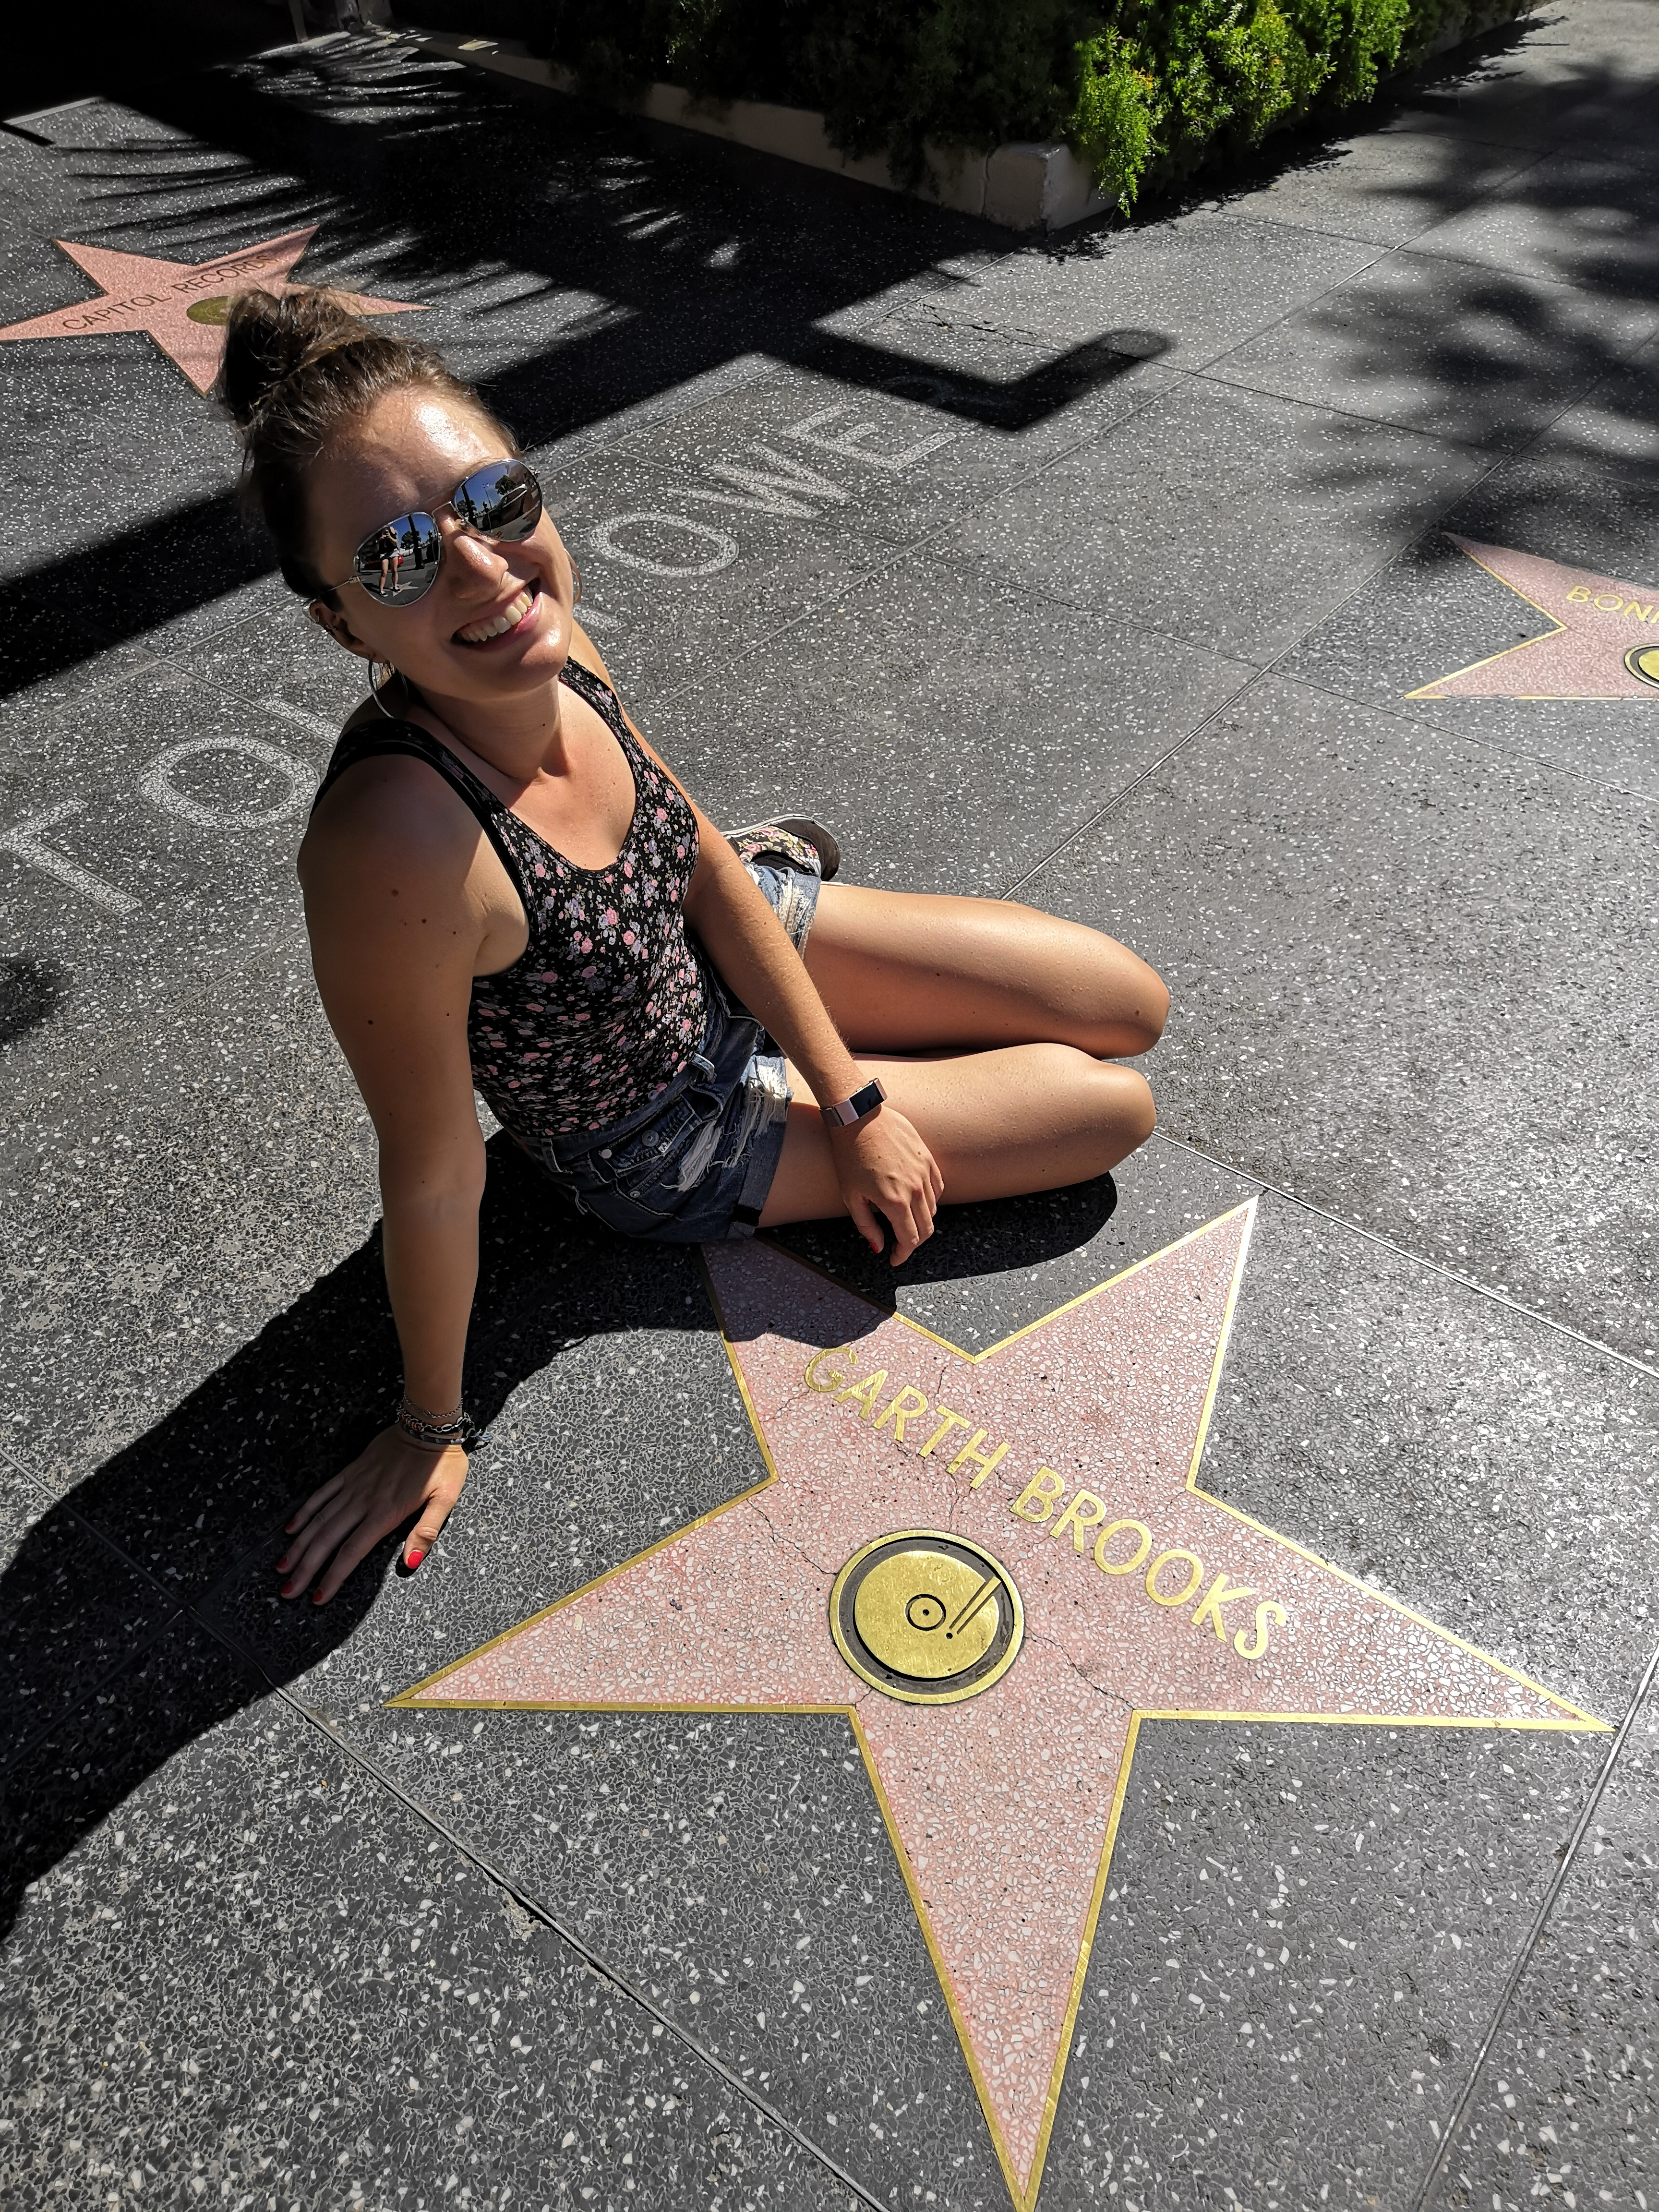 Country Walk of Fame